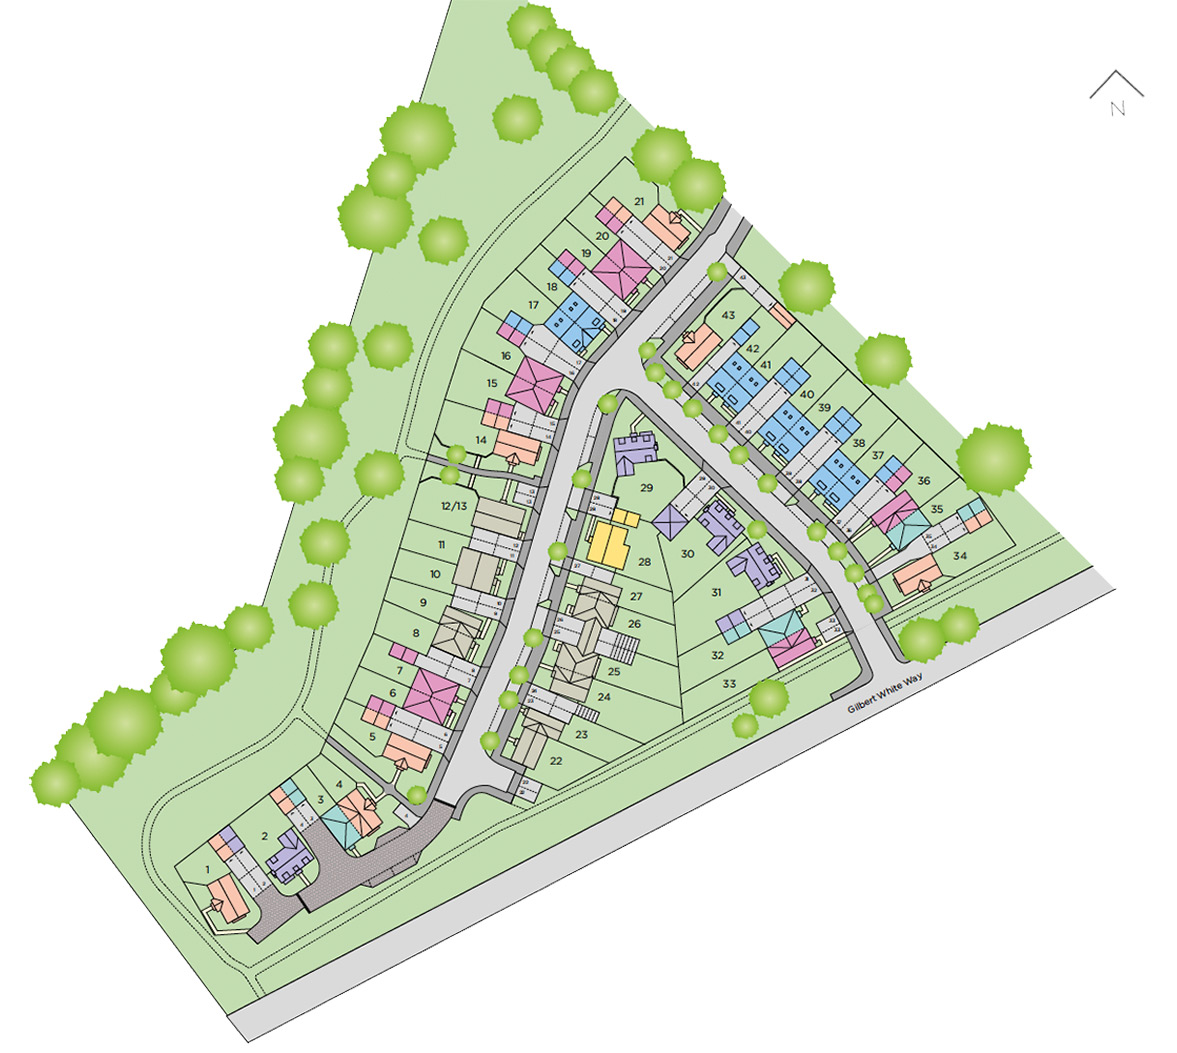 Plot 39 – The Hartfield Siteplan